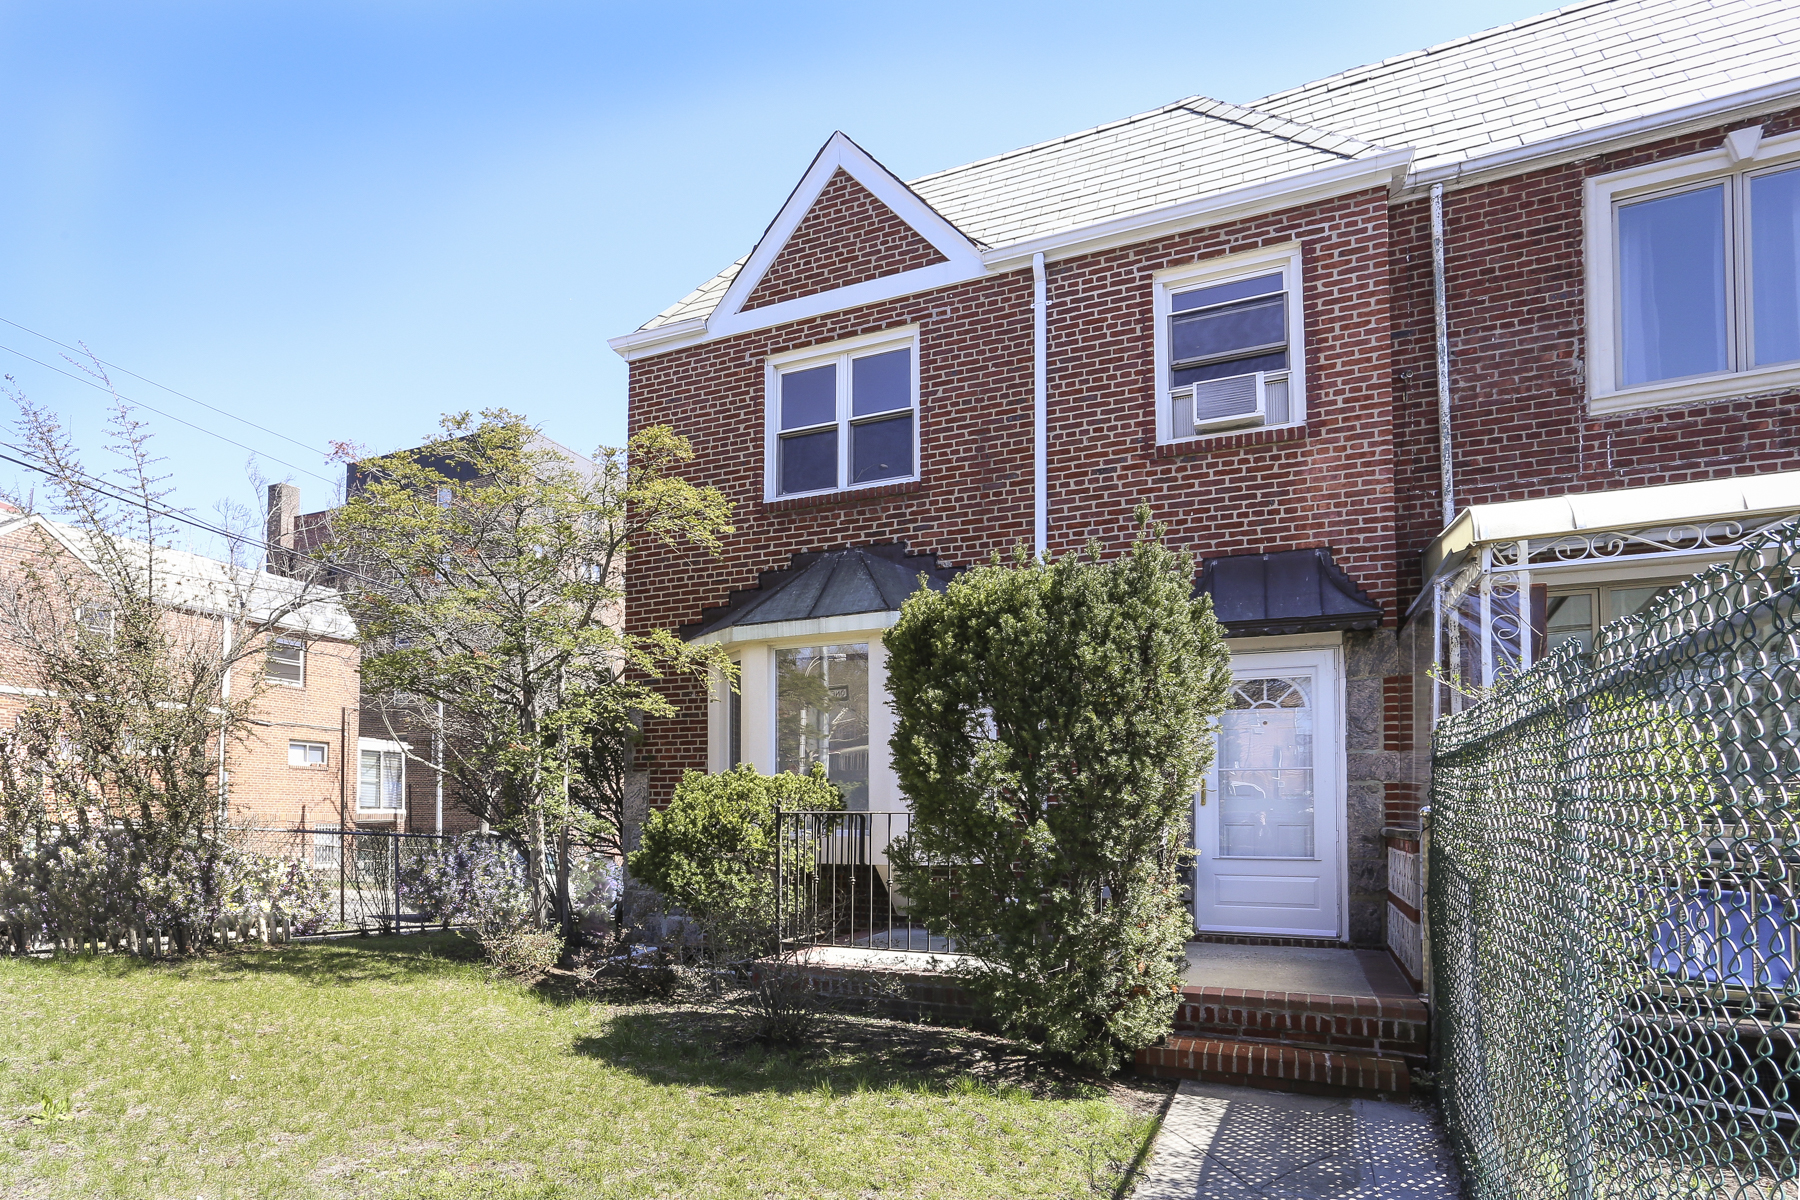 """Single Family Home for Rent at """"LOVELY SEMI-ATTACHED HOUSE RENTAL"""" Rego Park, New York 11374 United States"""